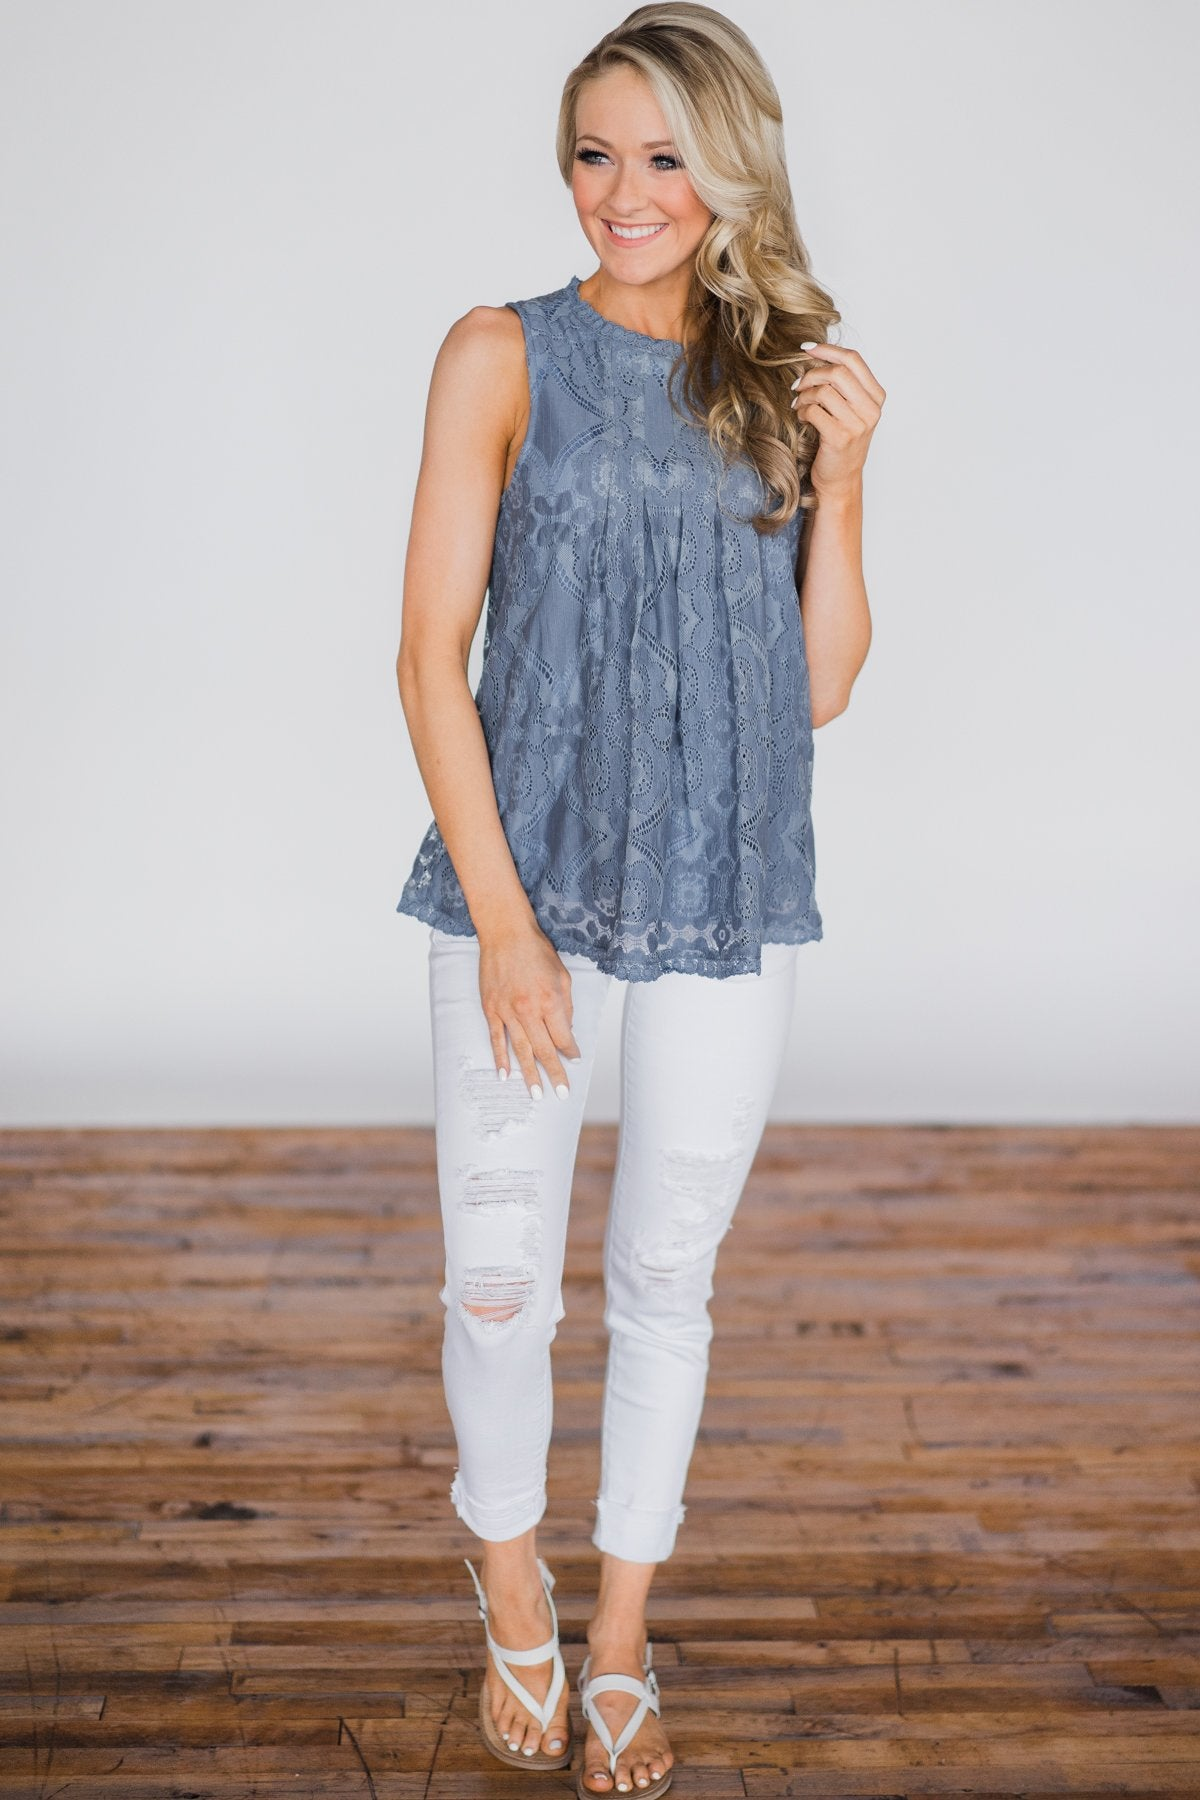 Feelings for You Tank Top - Denim Blue